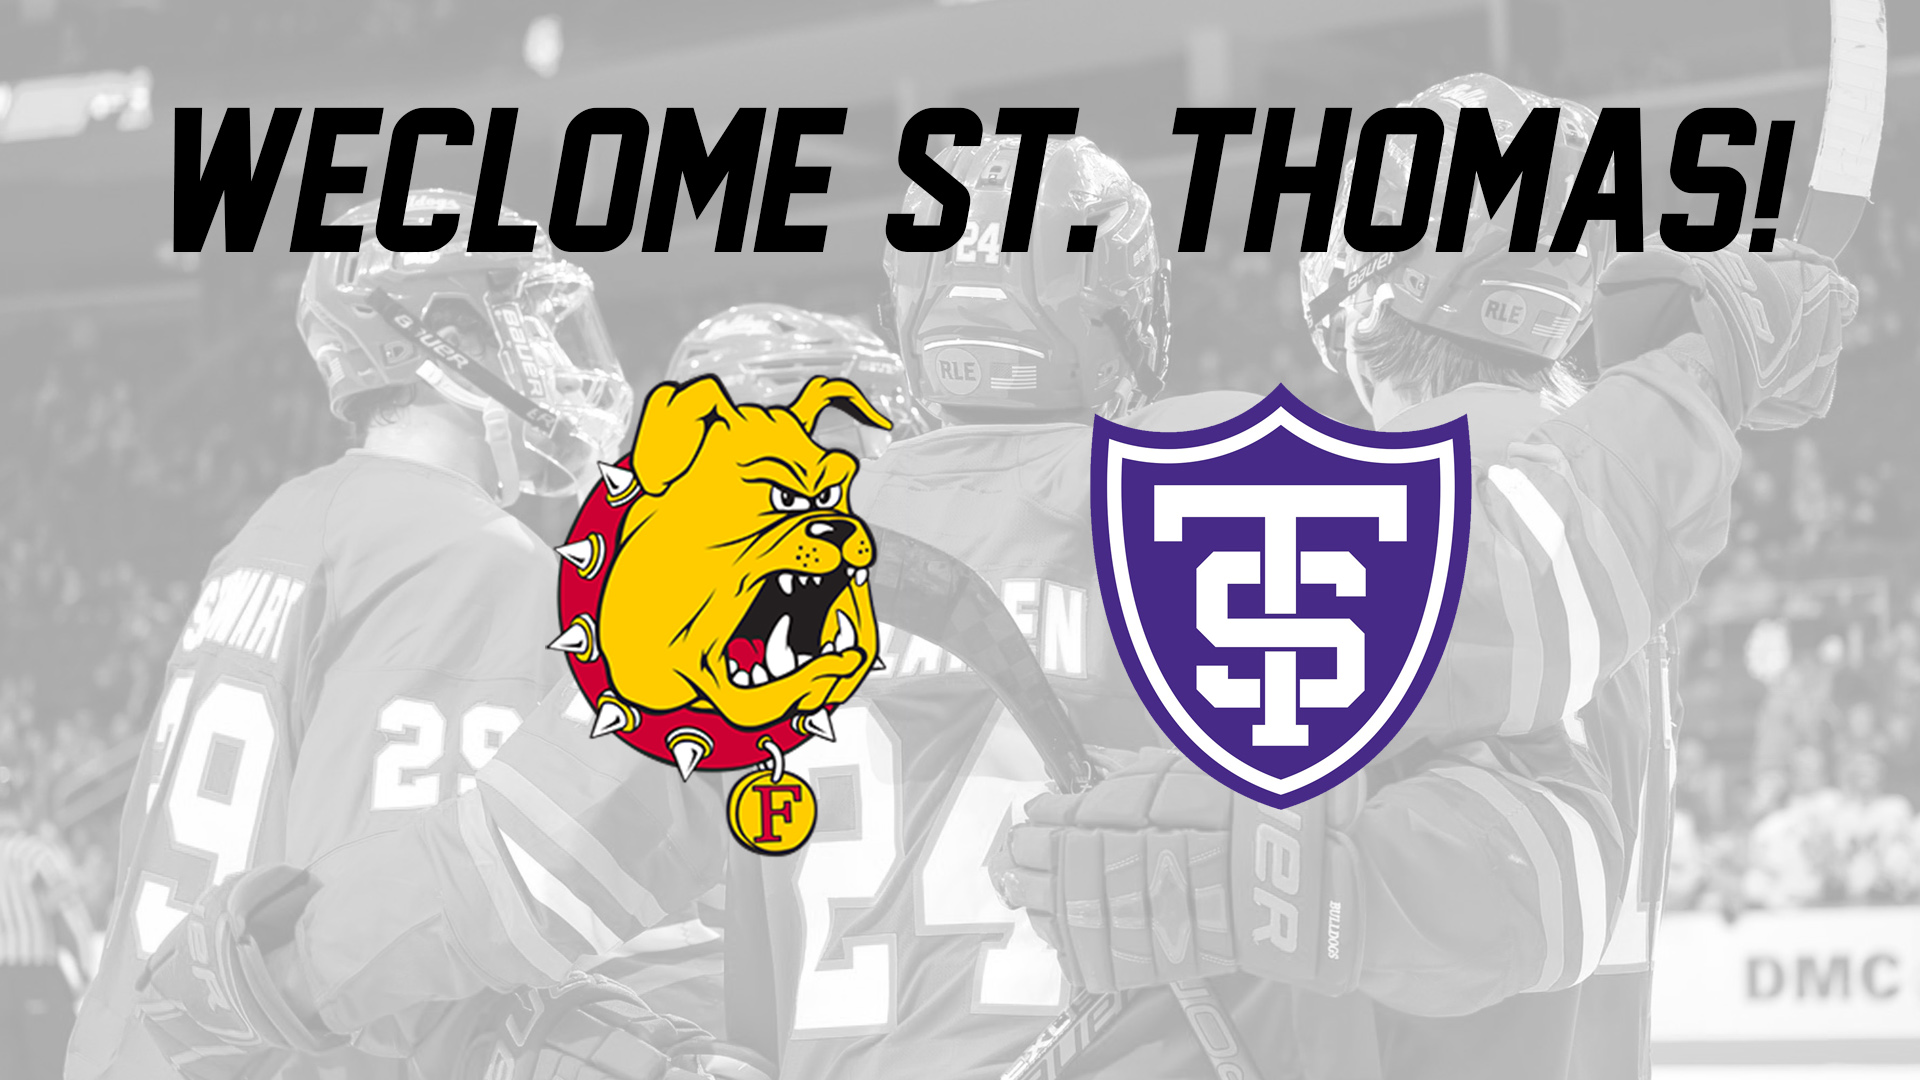 New Central Collegiate Hockey Association Welcomes the University of St. Thomas